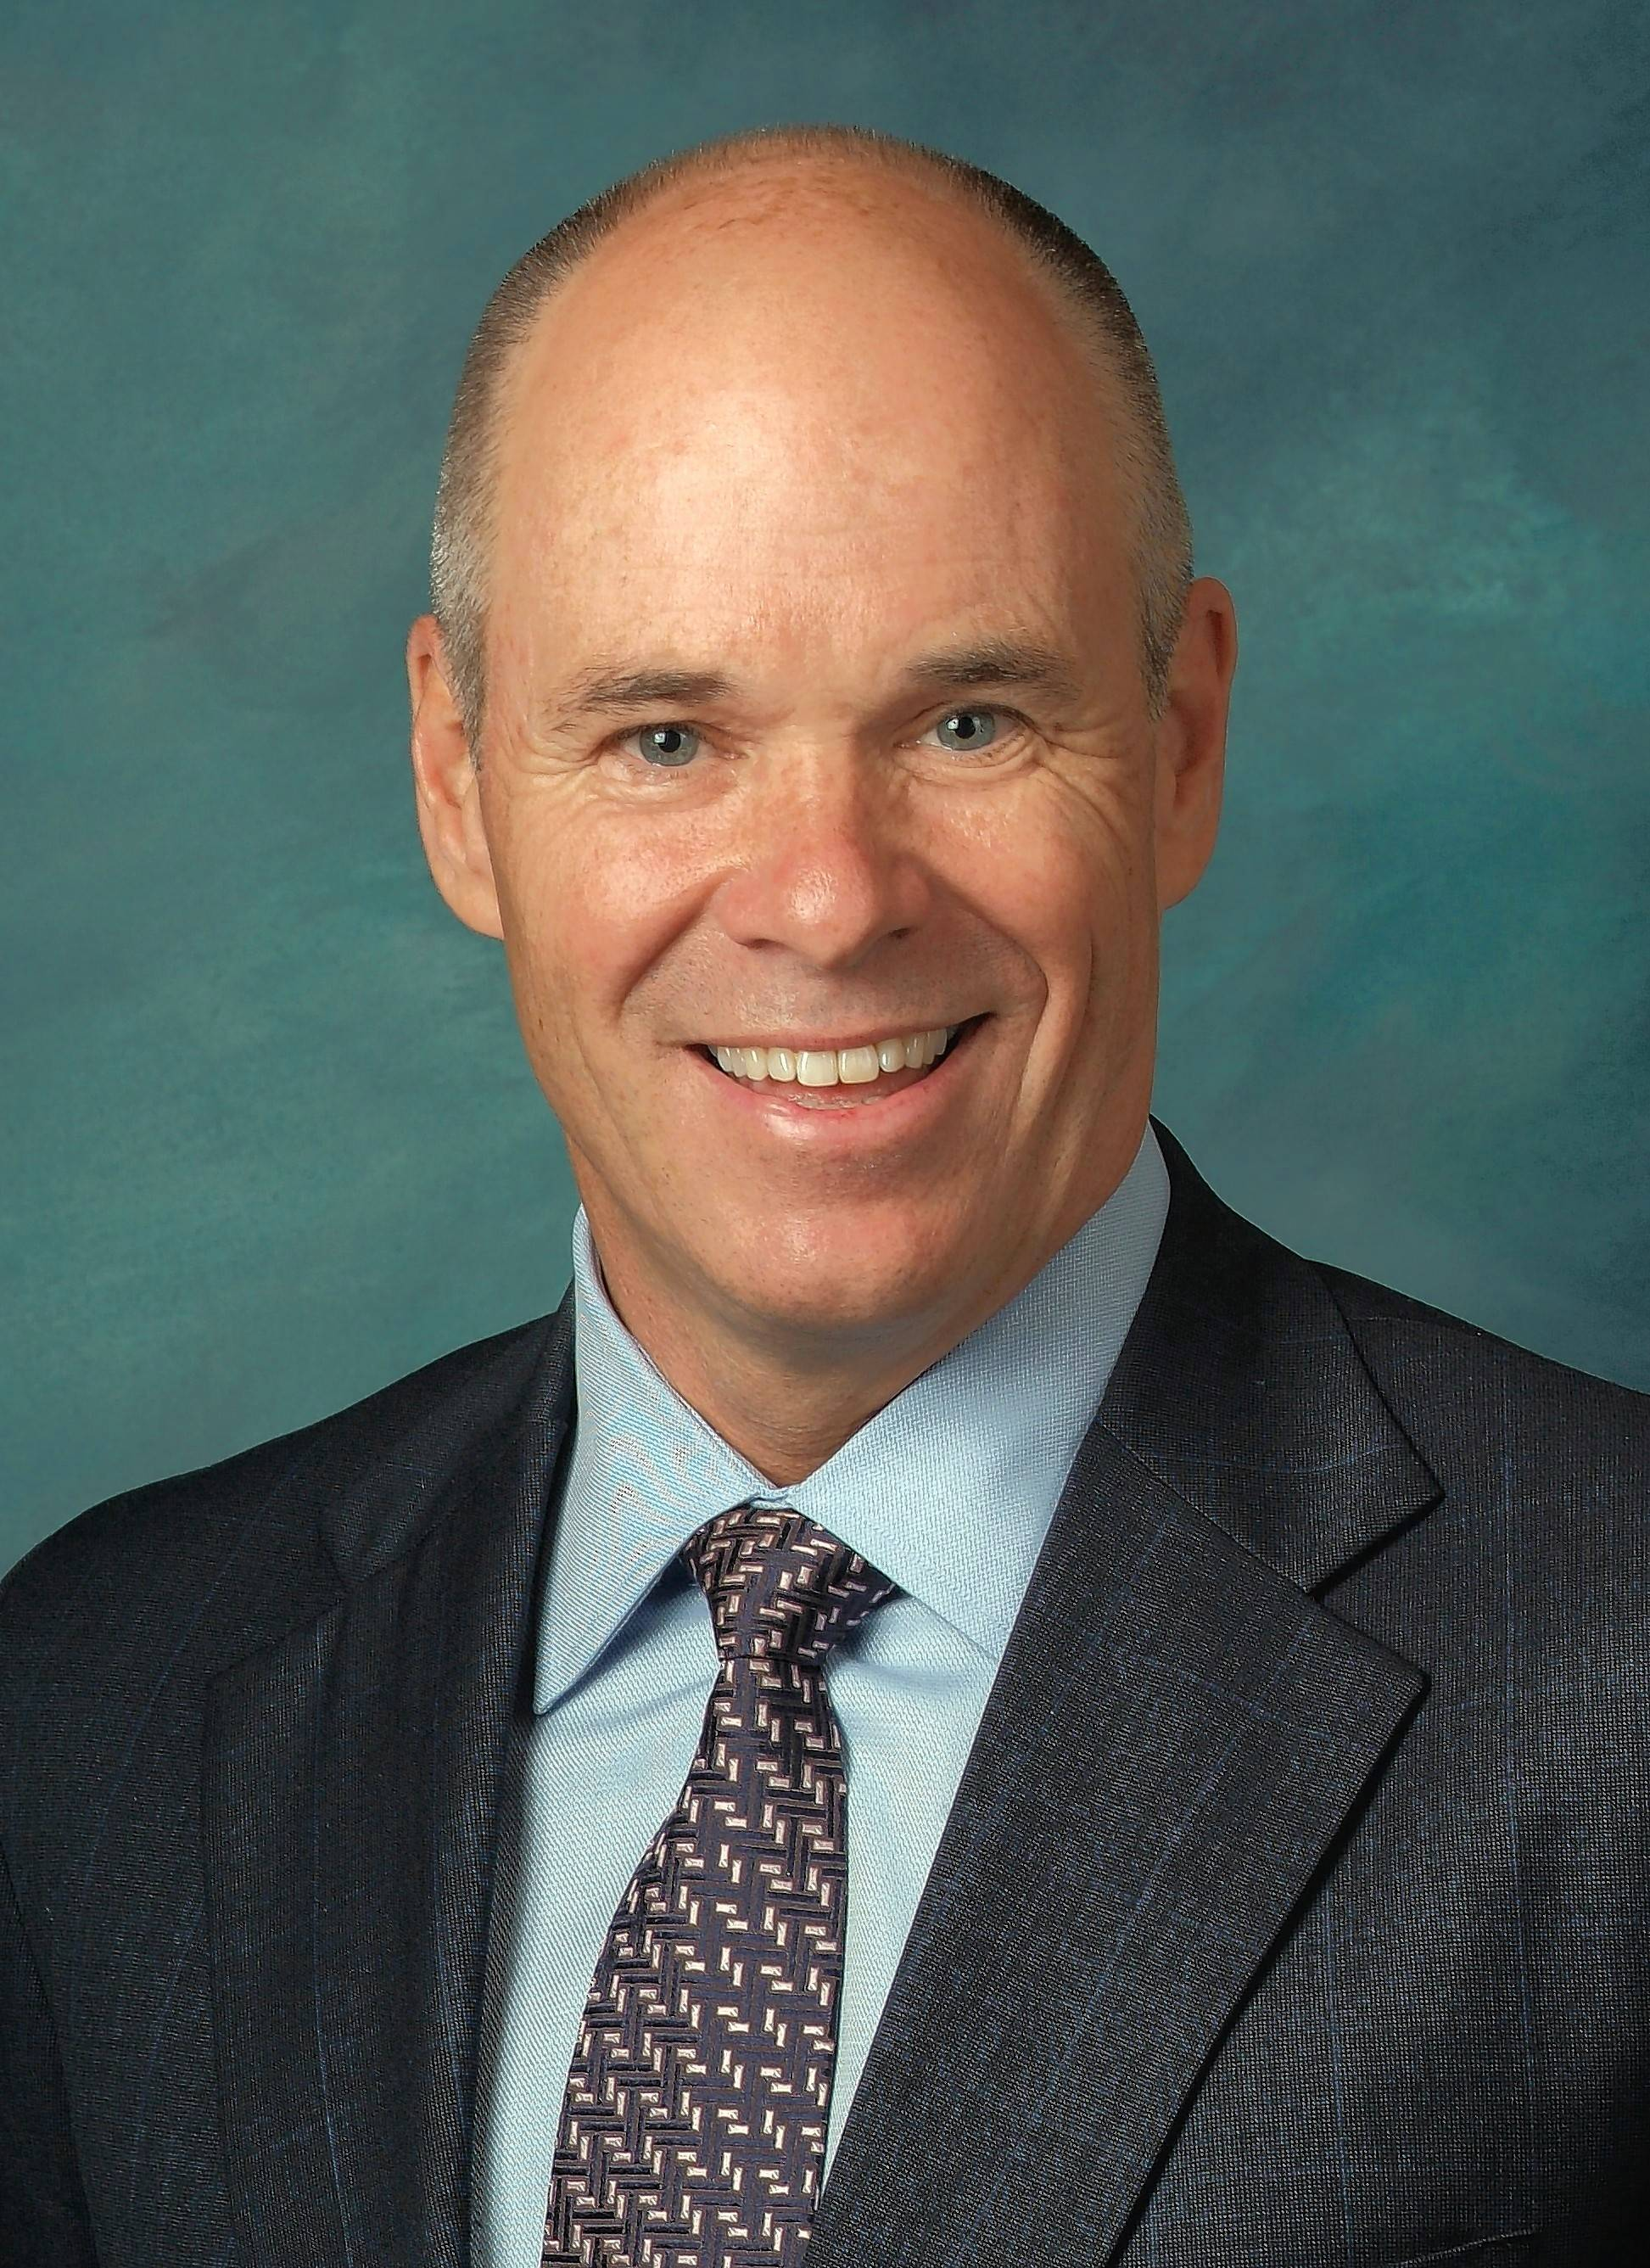 Longtime Naperville resident Bill Kottmann named CEO, president of Edward Hospital